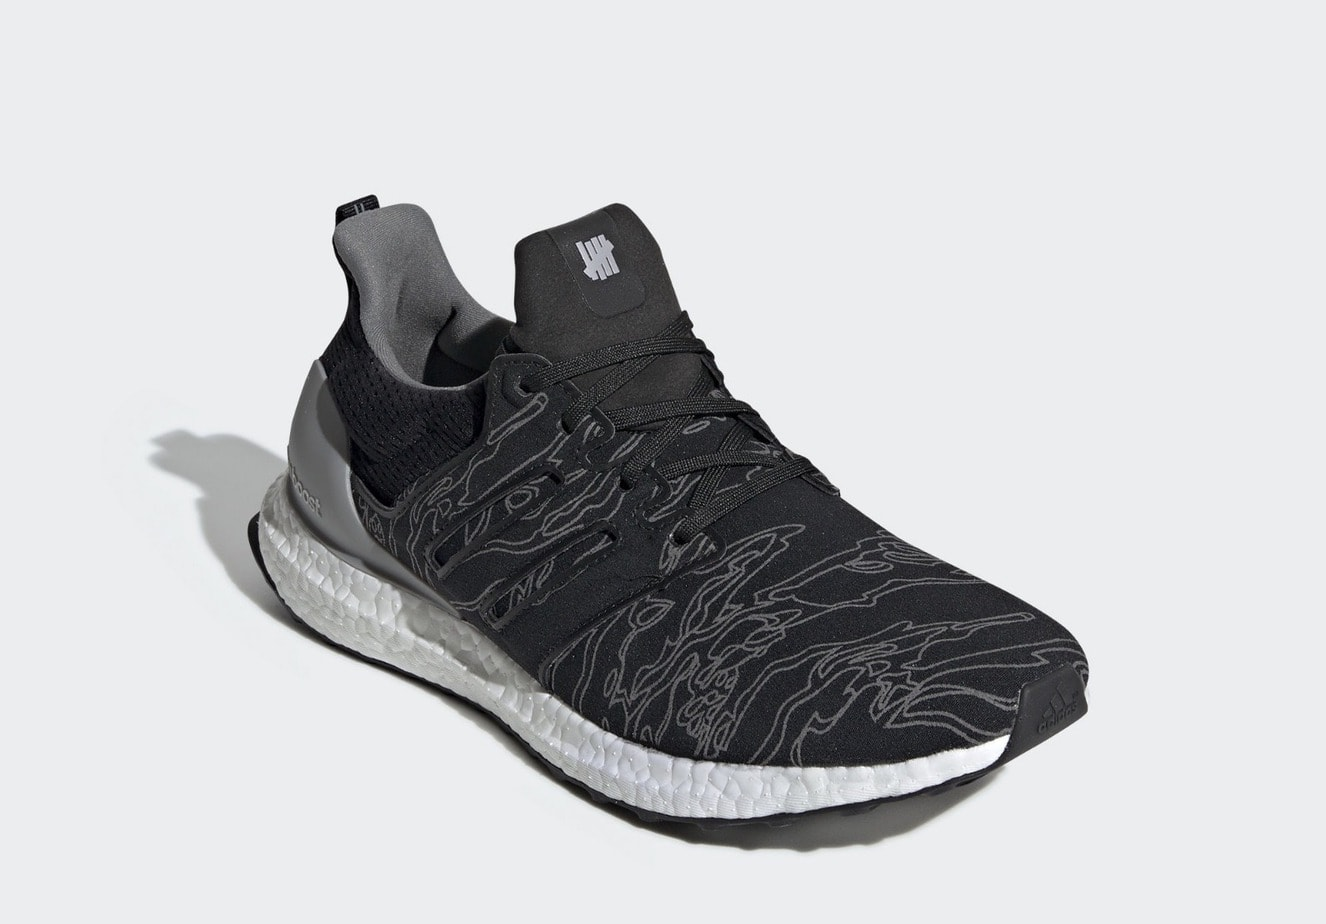 d38072578c5b Undefeated x adidas Ultra Boost 2.0 August 2018 - JustFreshkicks